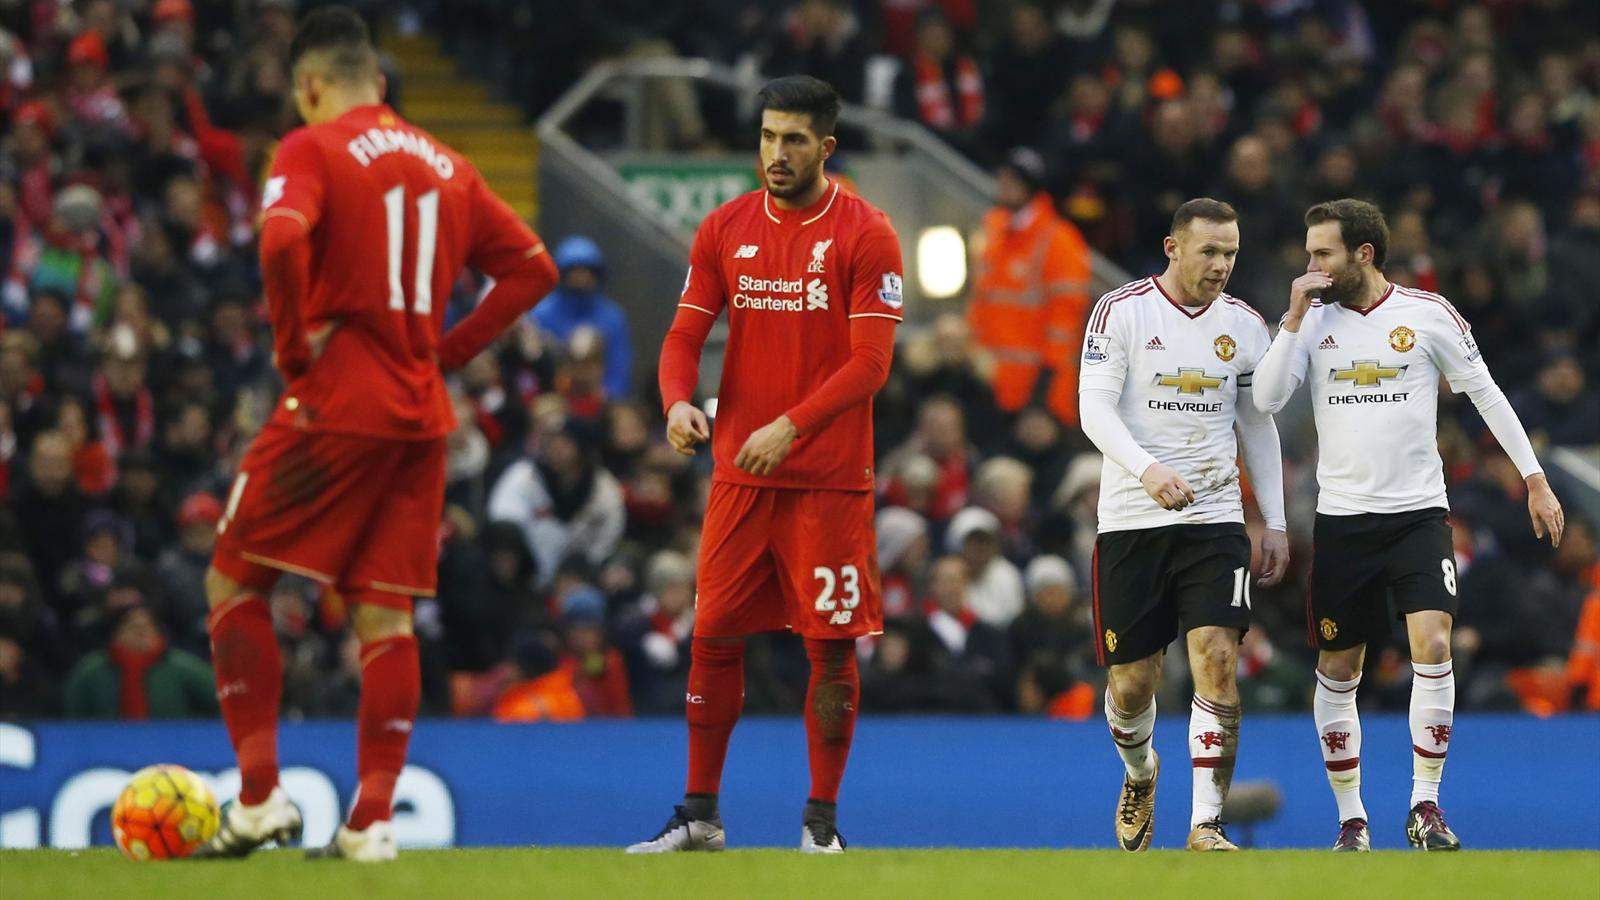 Liverpool's Emre Can and Roberto Firmino look dejected after Wayne Rooney (2nd R) scored the first goal for Manchester United